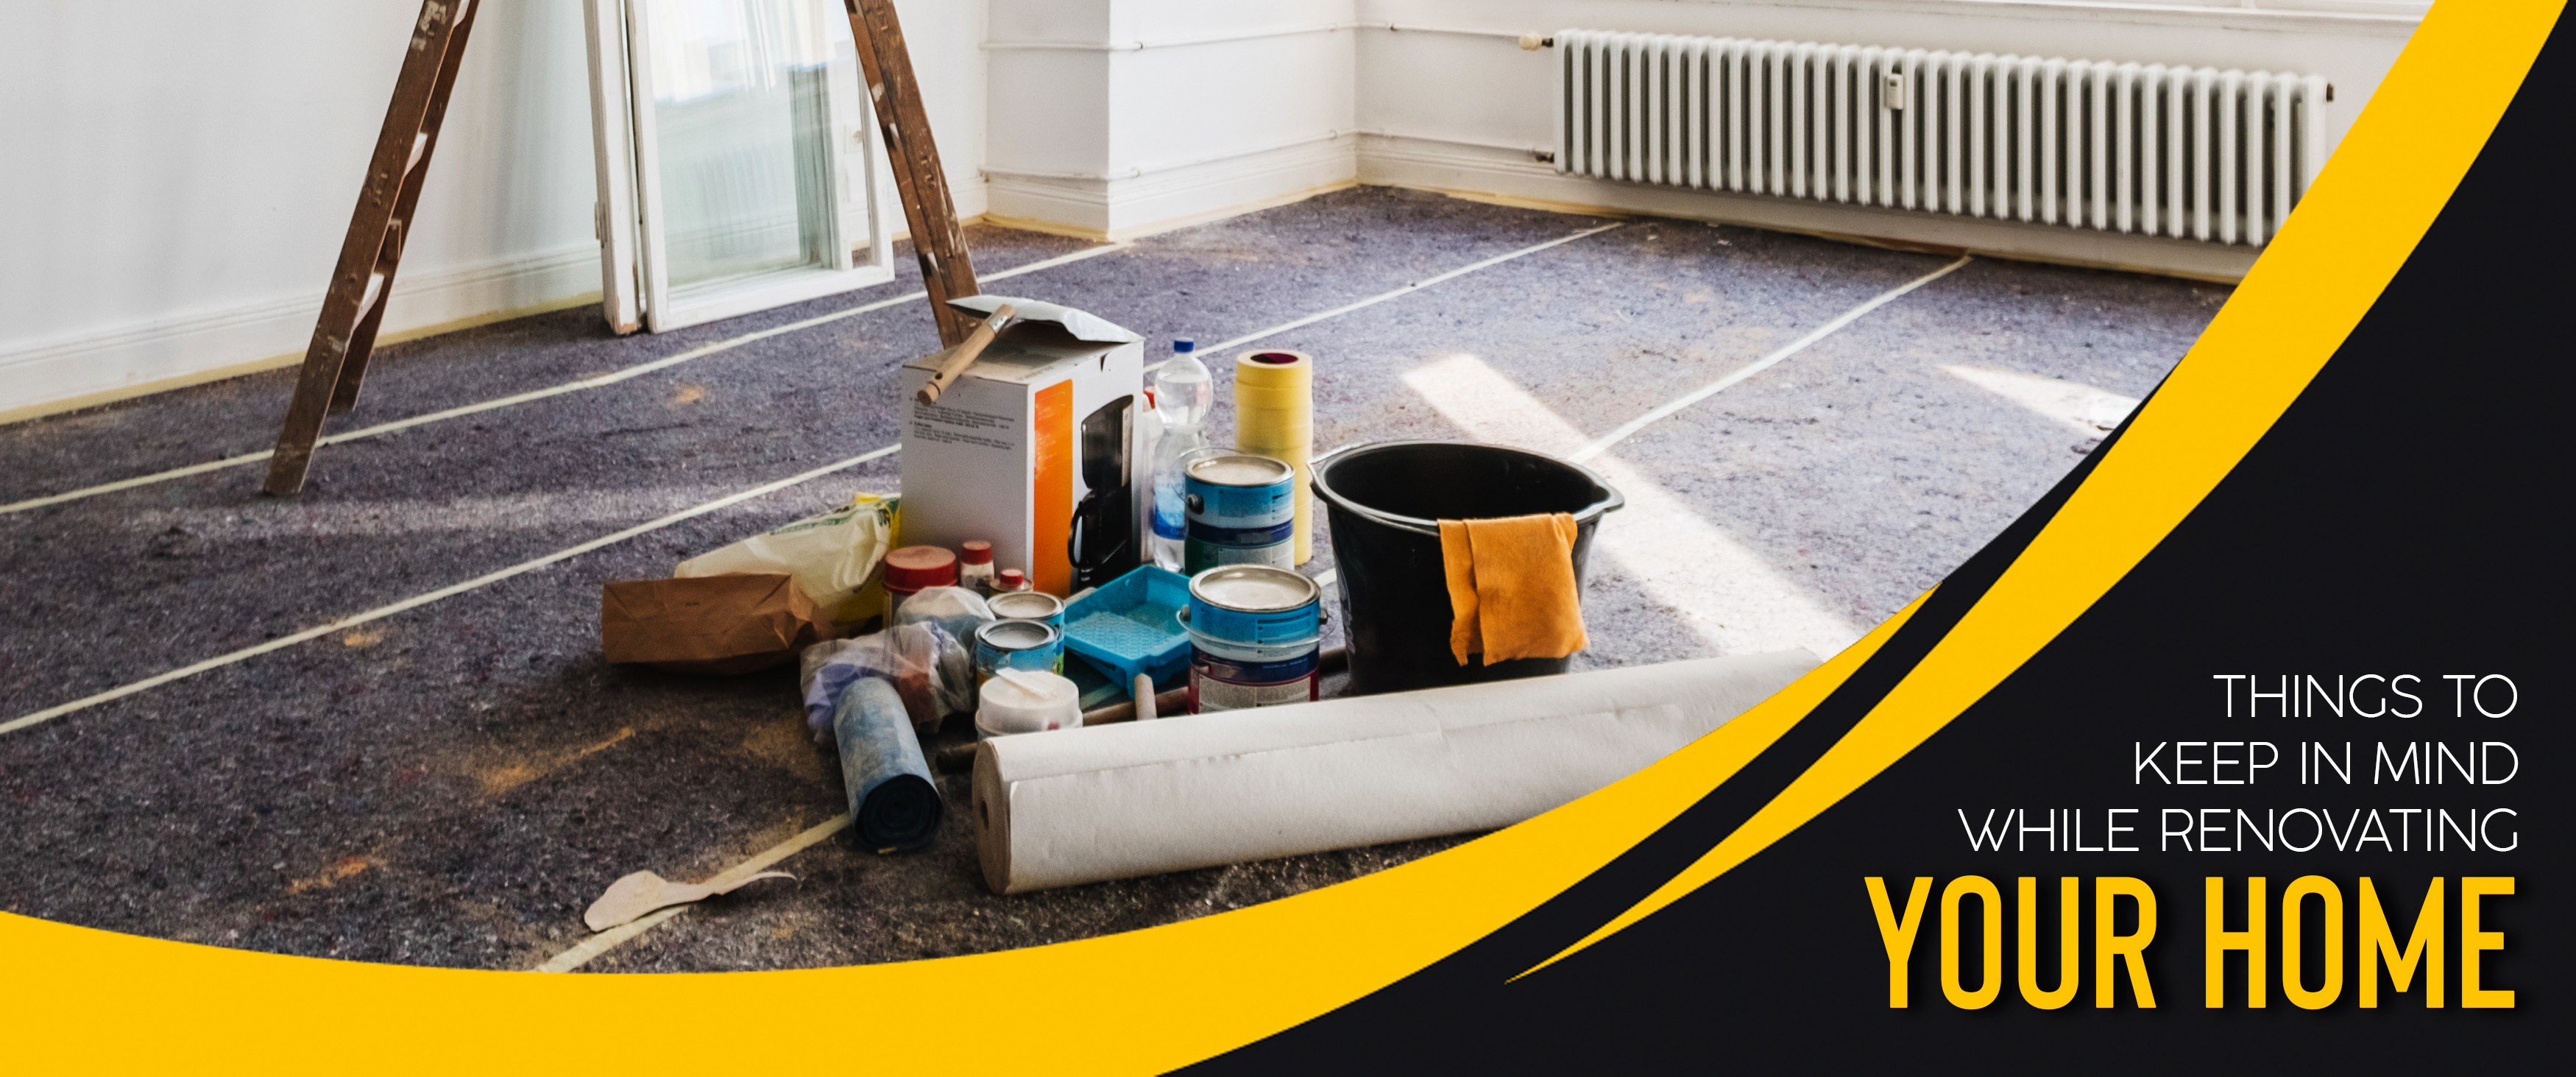 Things To Keep In Mind While Renovating Your Home